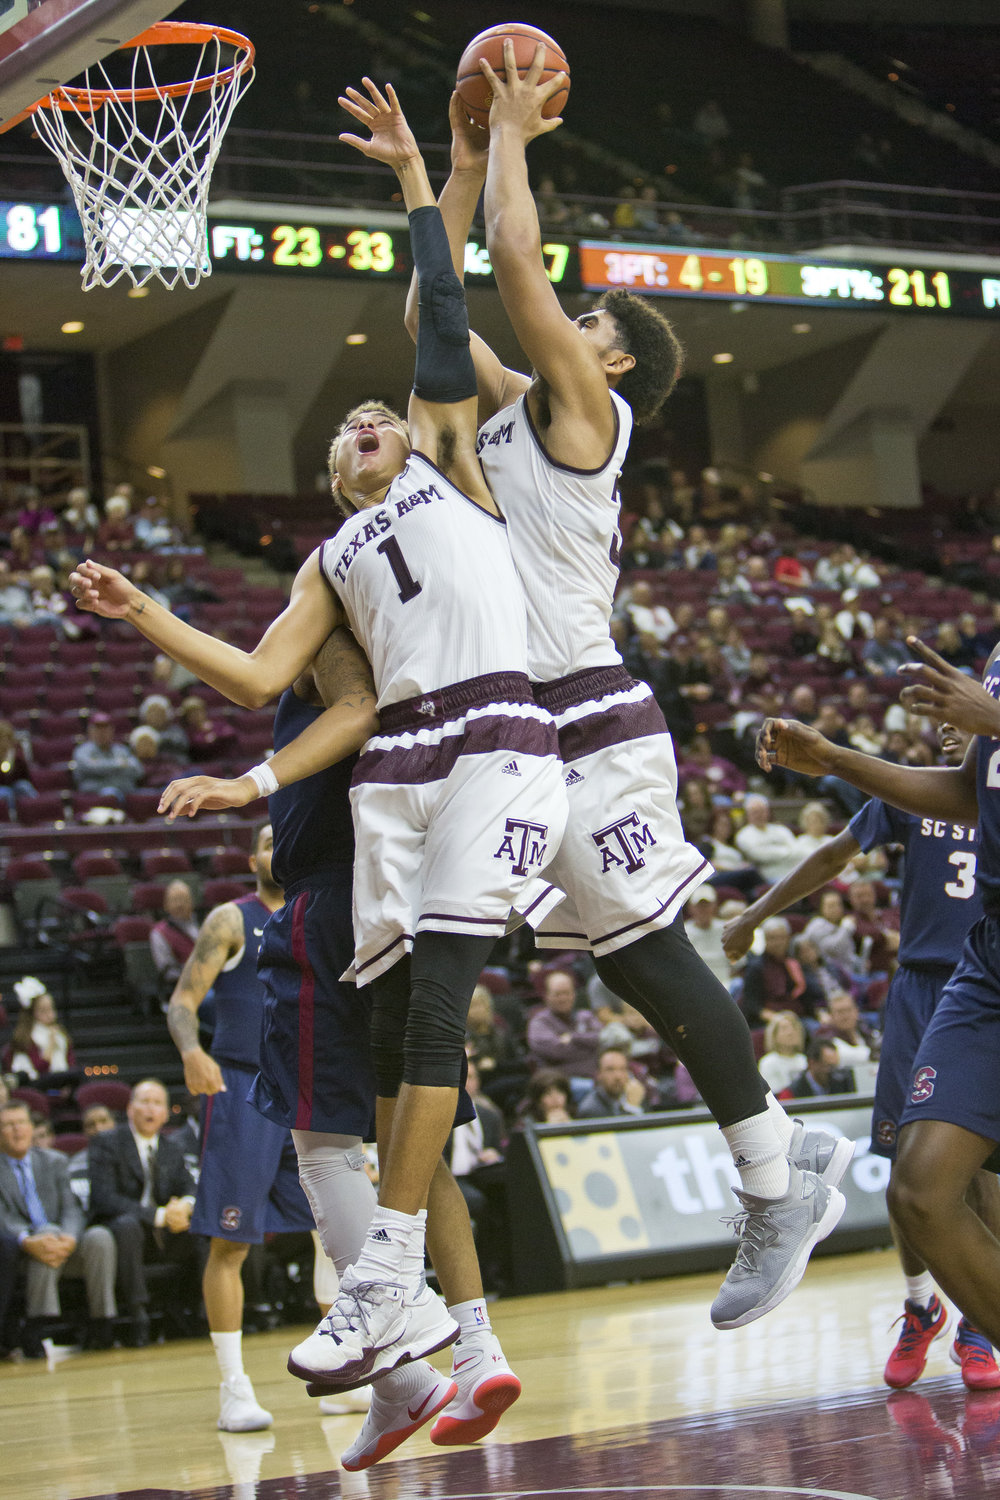 TAMU takes on South Carolina State